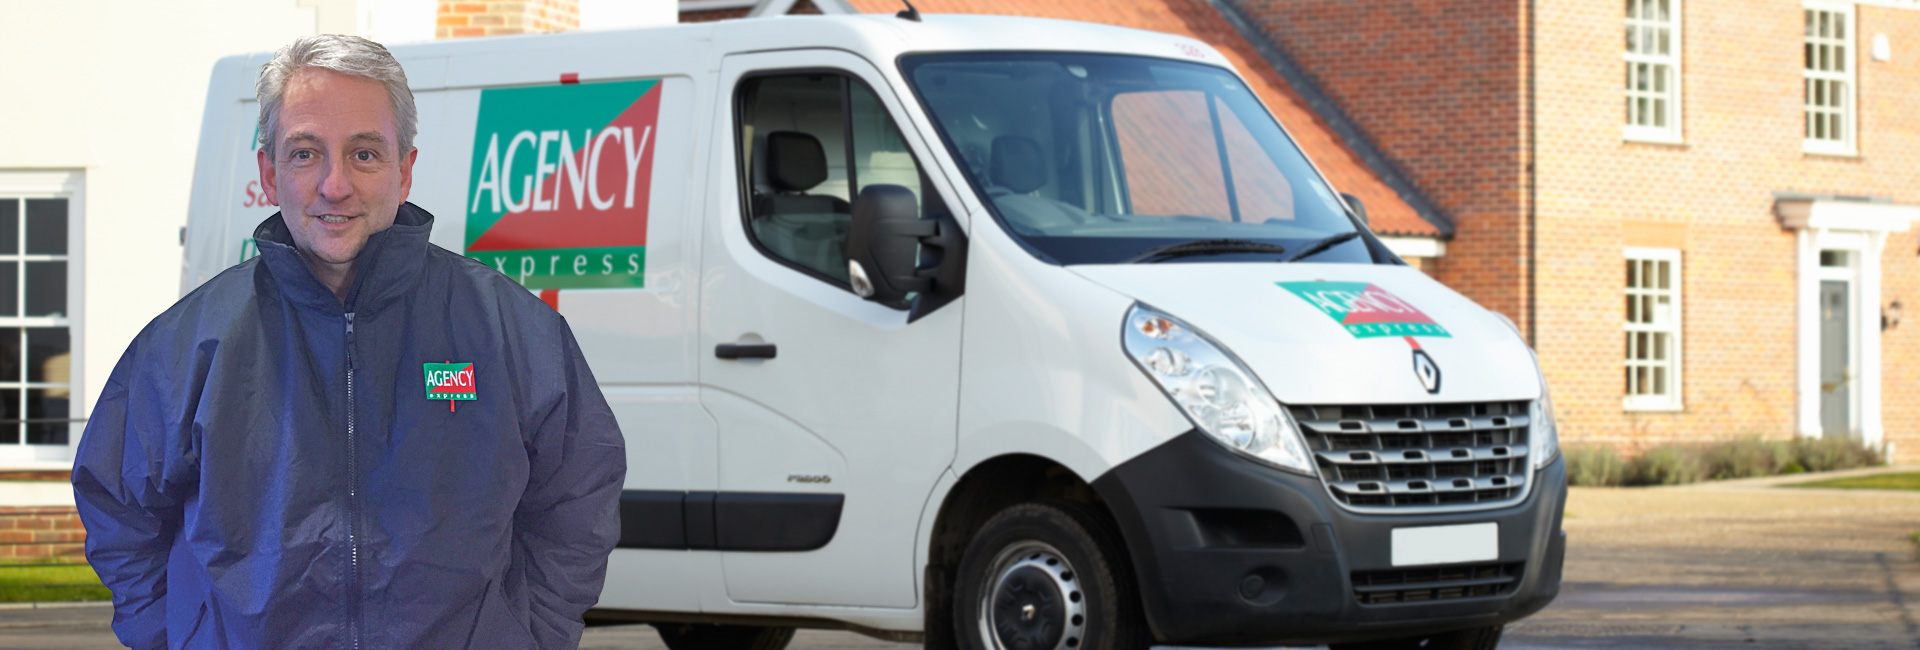 Agency Express franchise case study. Franchisee Steve Macqueen with van.